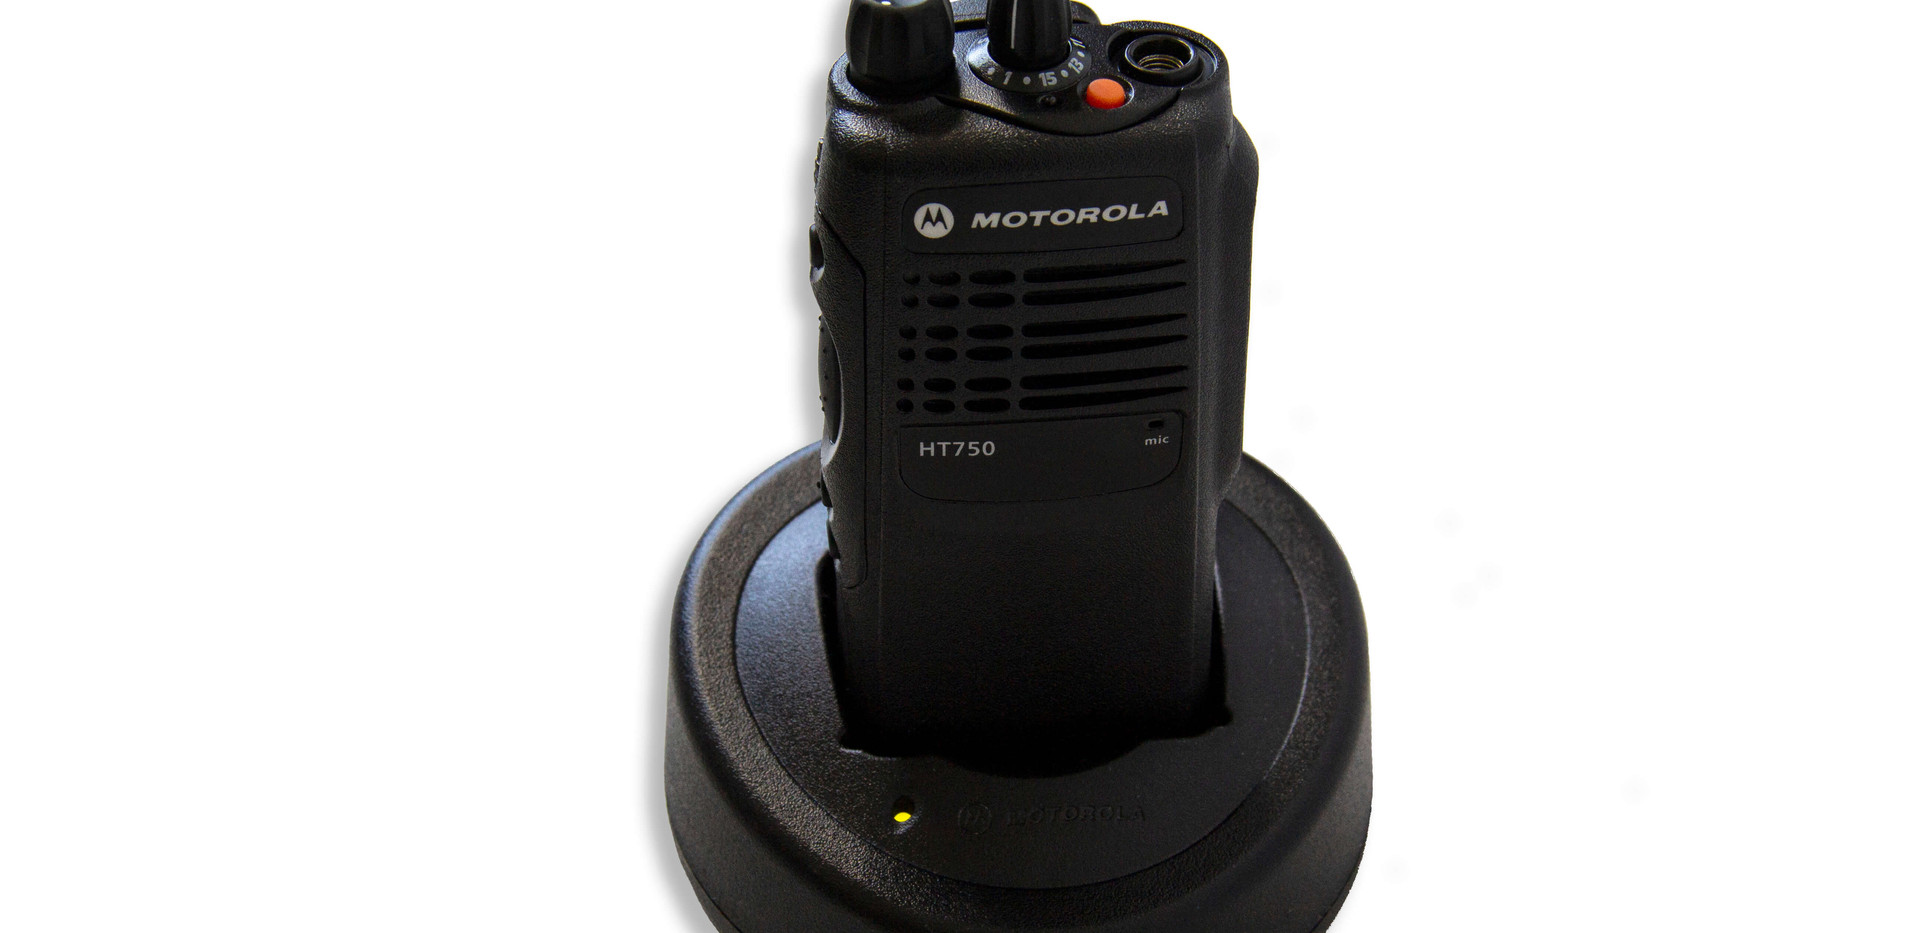 Stage Ops Motorola HT750 two-way radio in single-unit charger